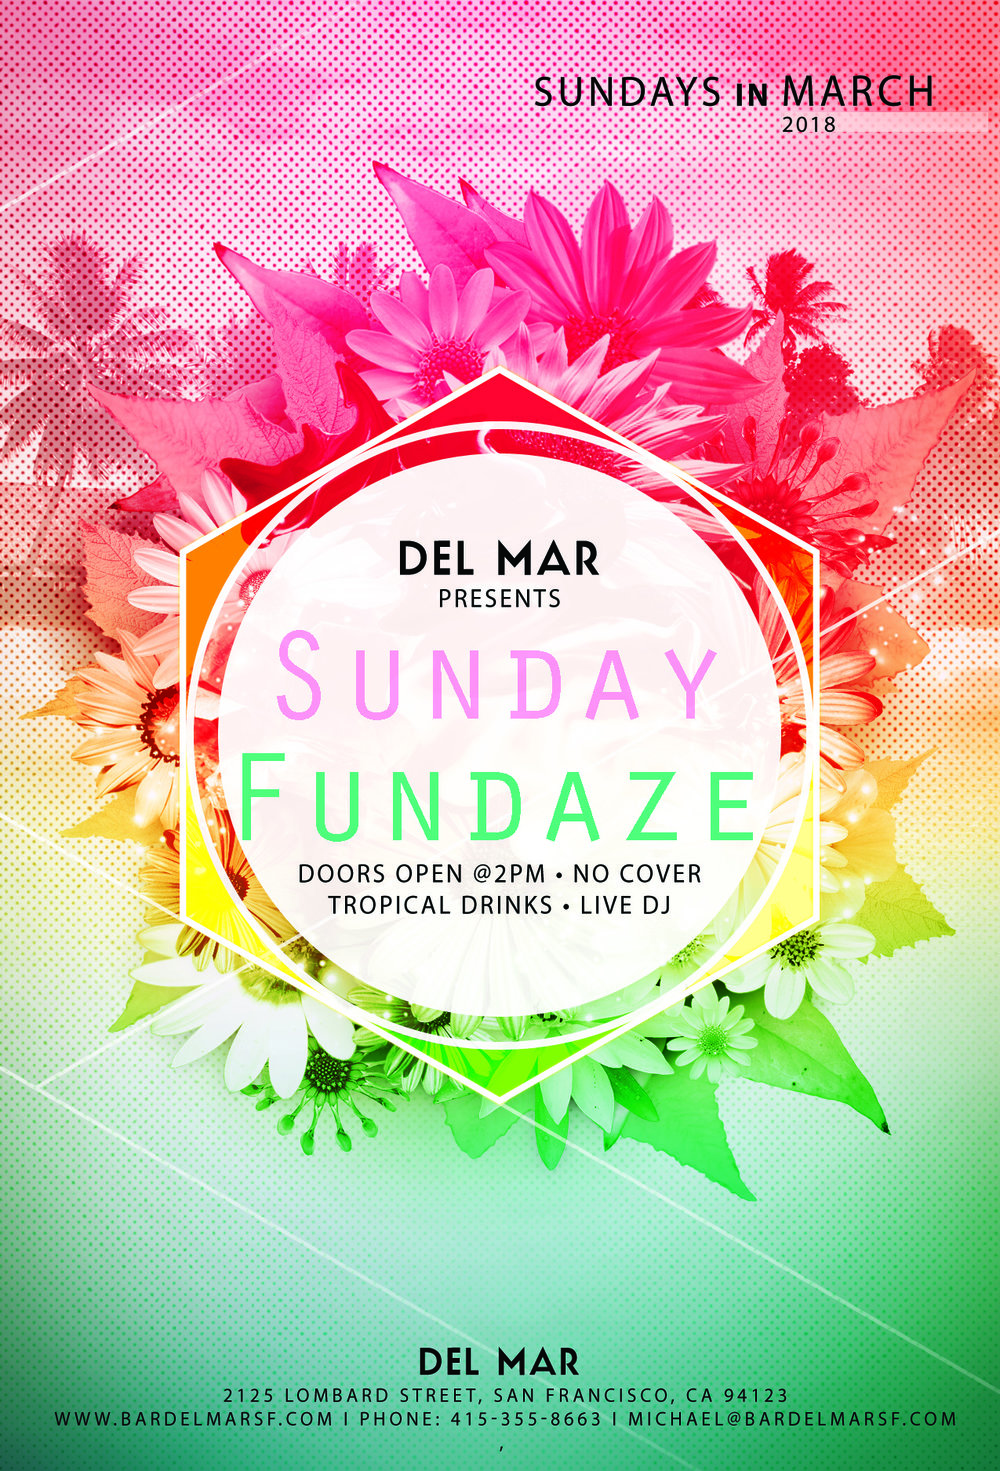 Sunday Funday Tropical Flyer March 4th 2018 no dj.jpg